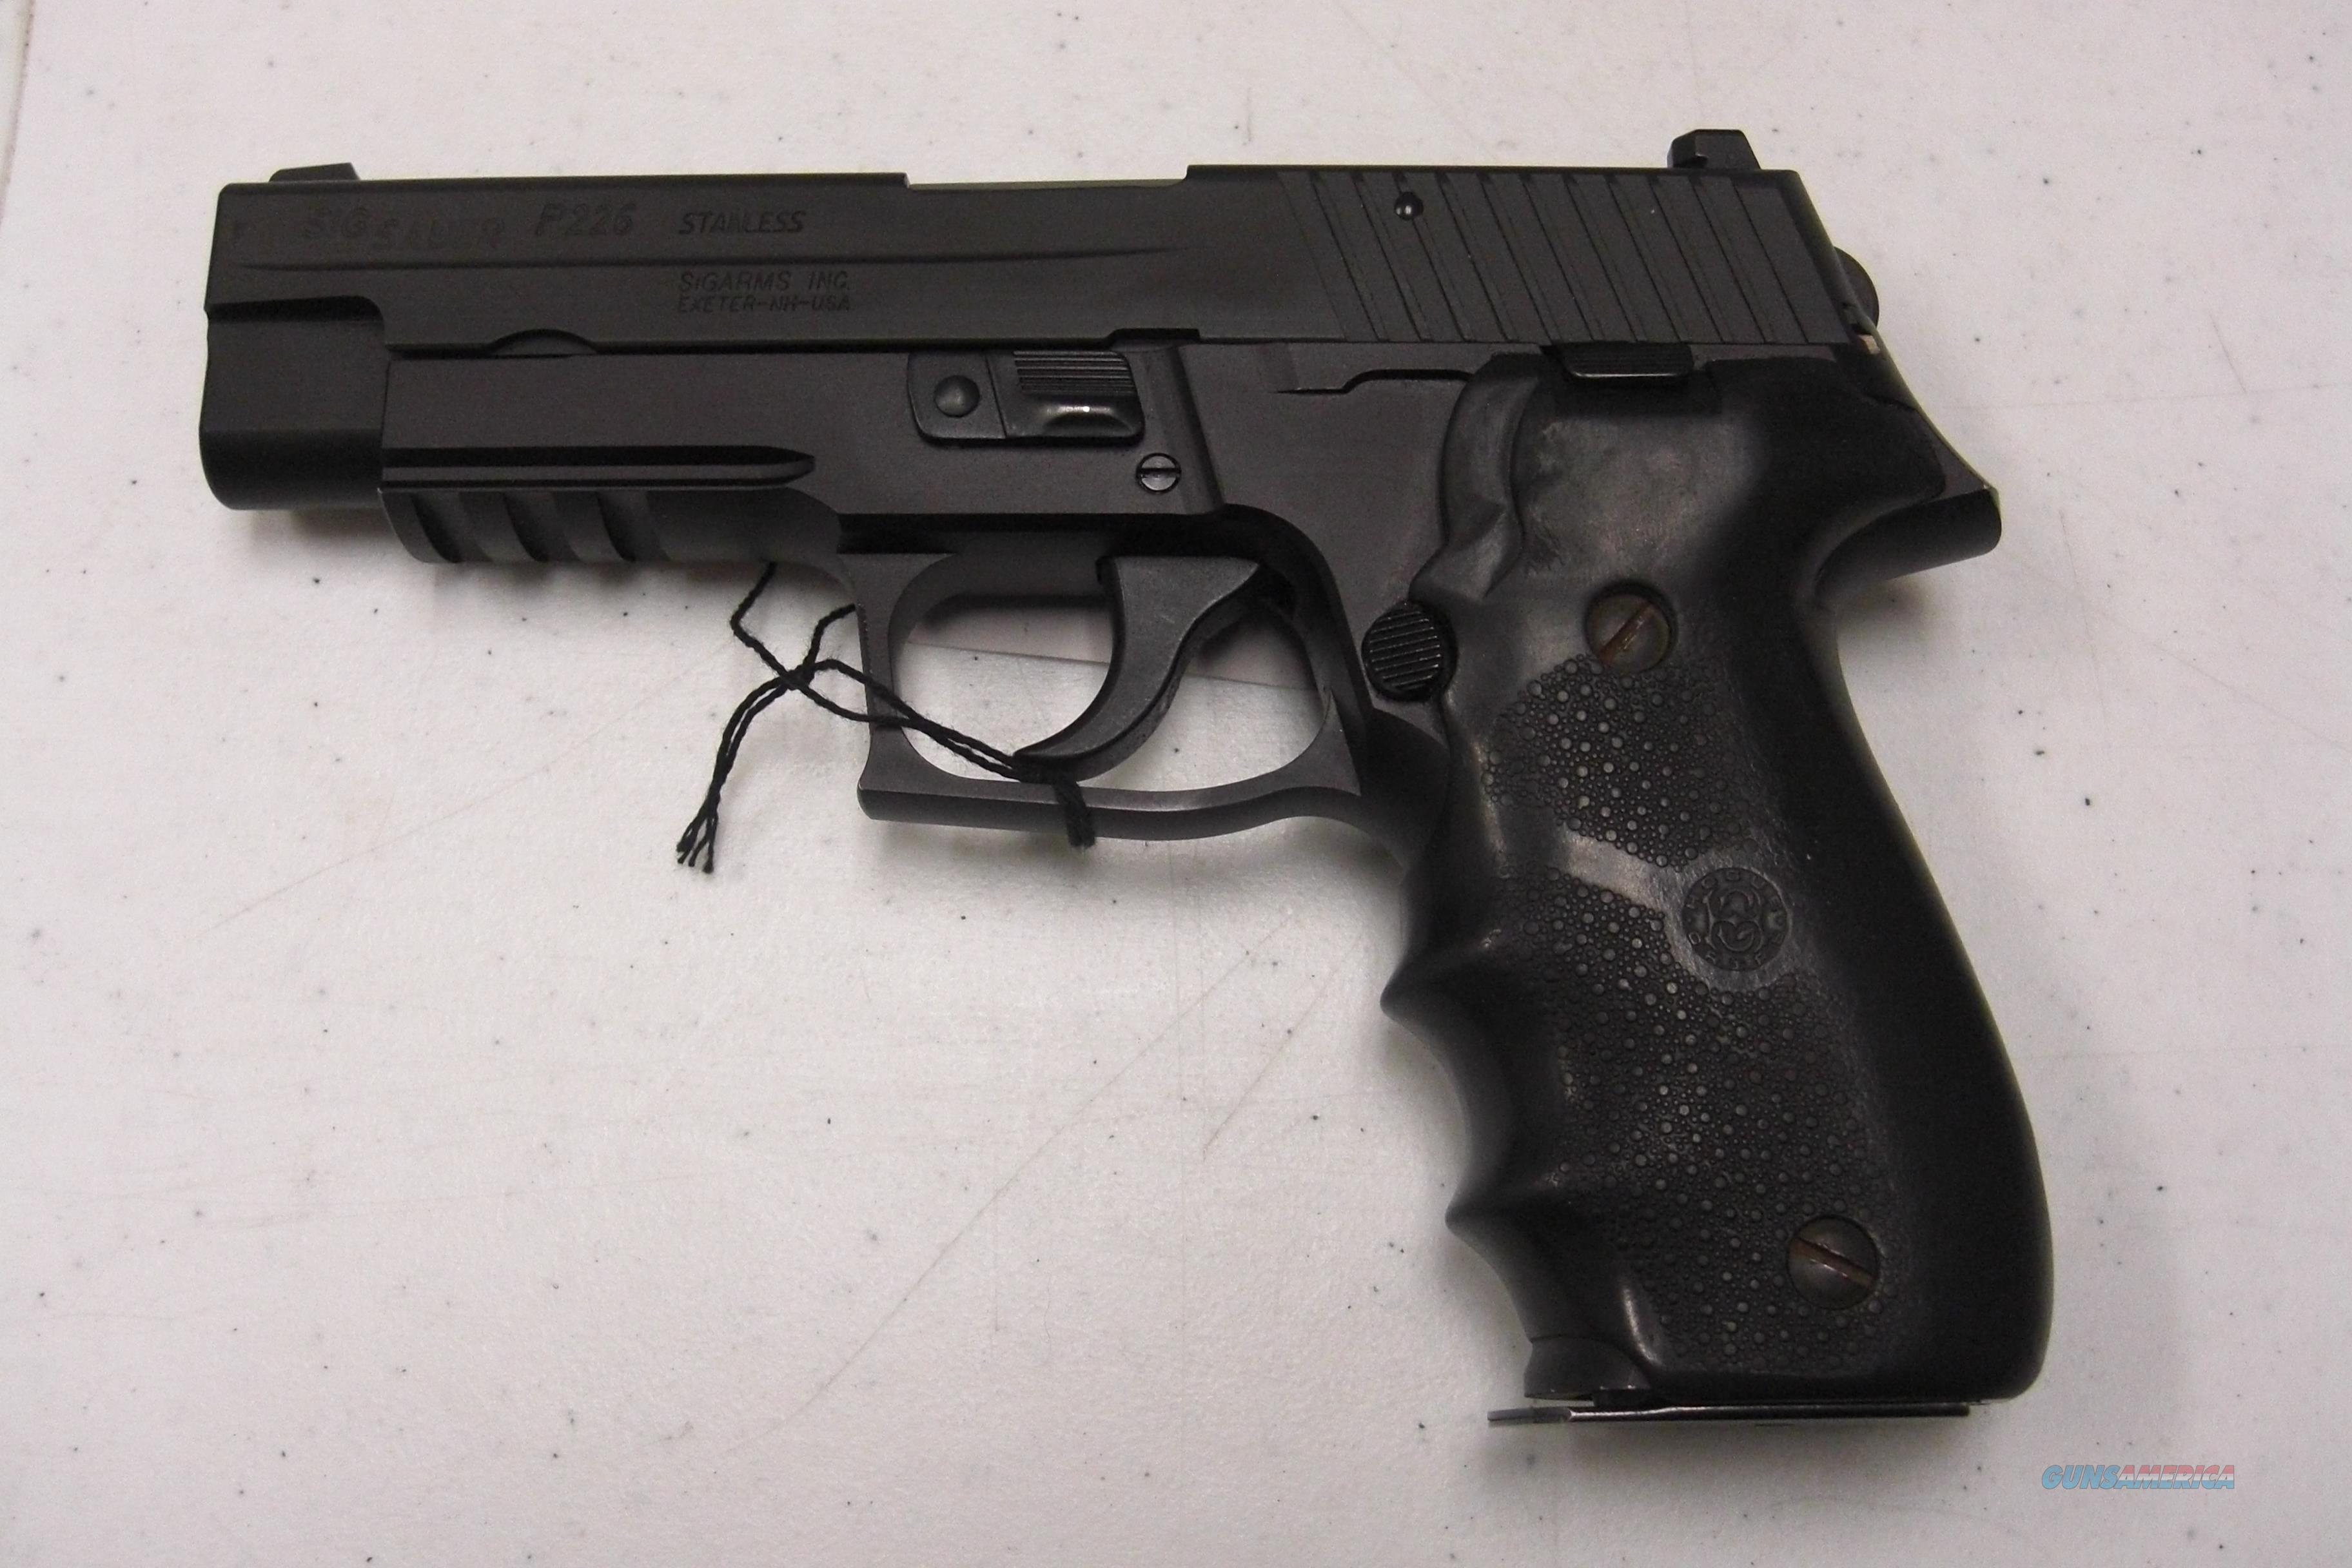 Sig Sauer P226 DAK .40S&W w/ 3 mags (used)  Guns > Pistols > Sig - Sauer/Sigarms Pistols > P226